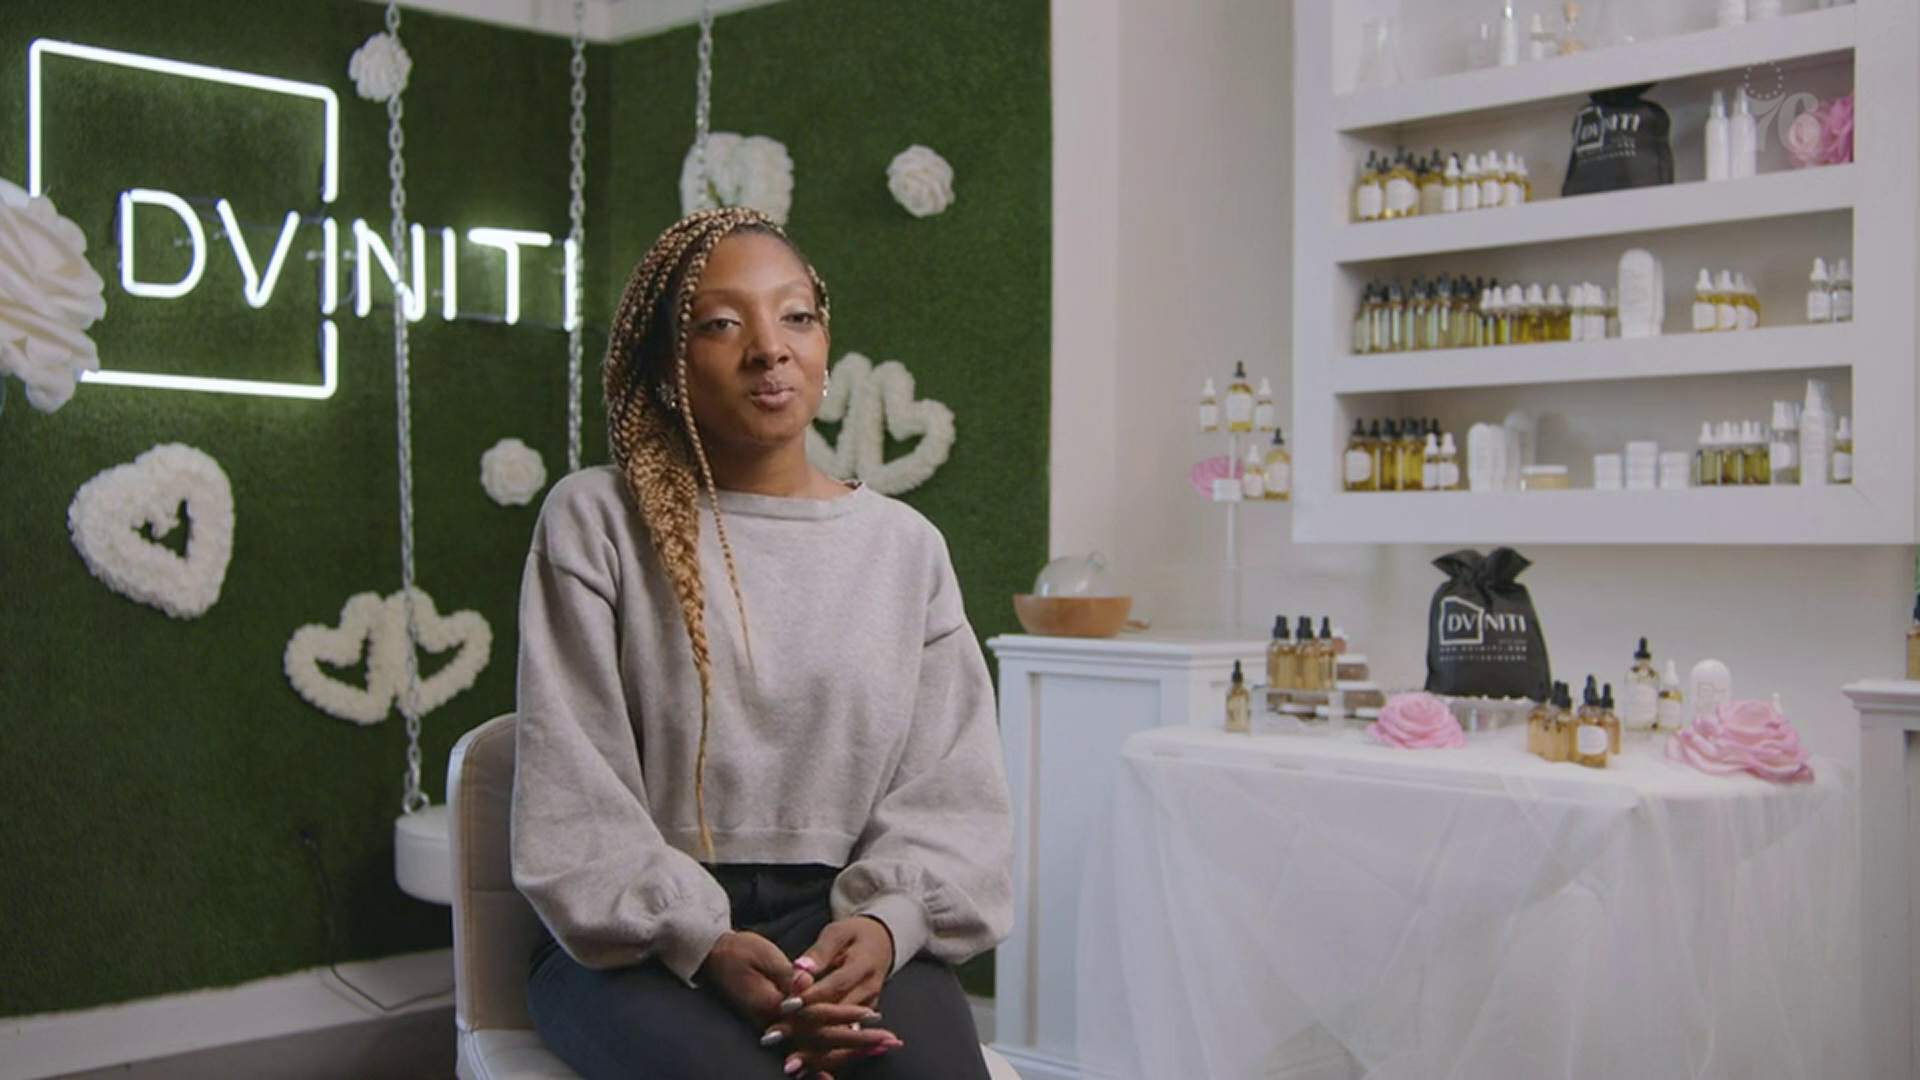 DVINITI Skincare | Small Business Spotlight